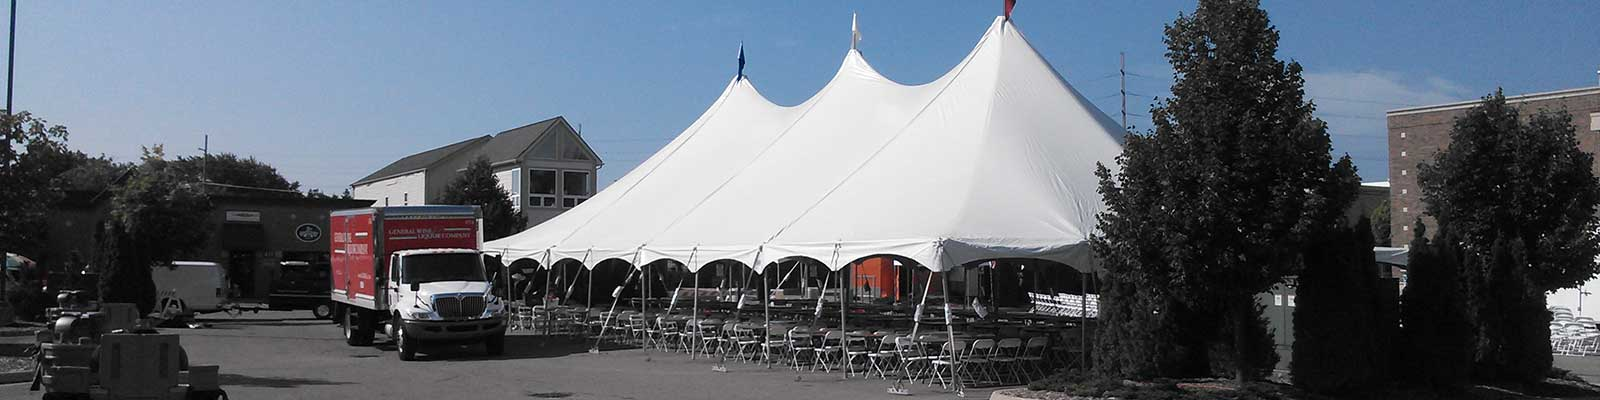 Company party rentals in Livingston County and Washtenaw County